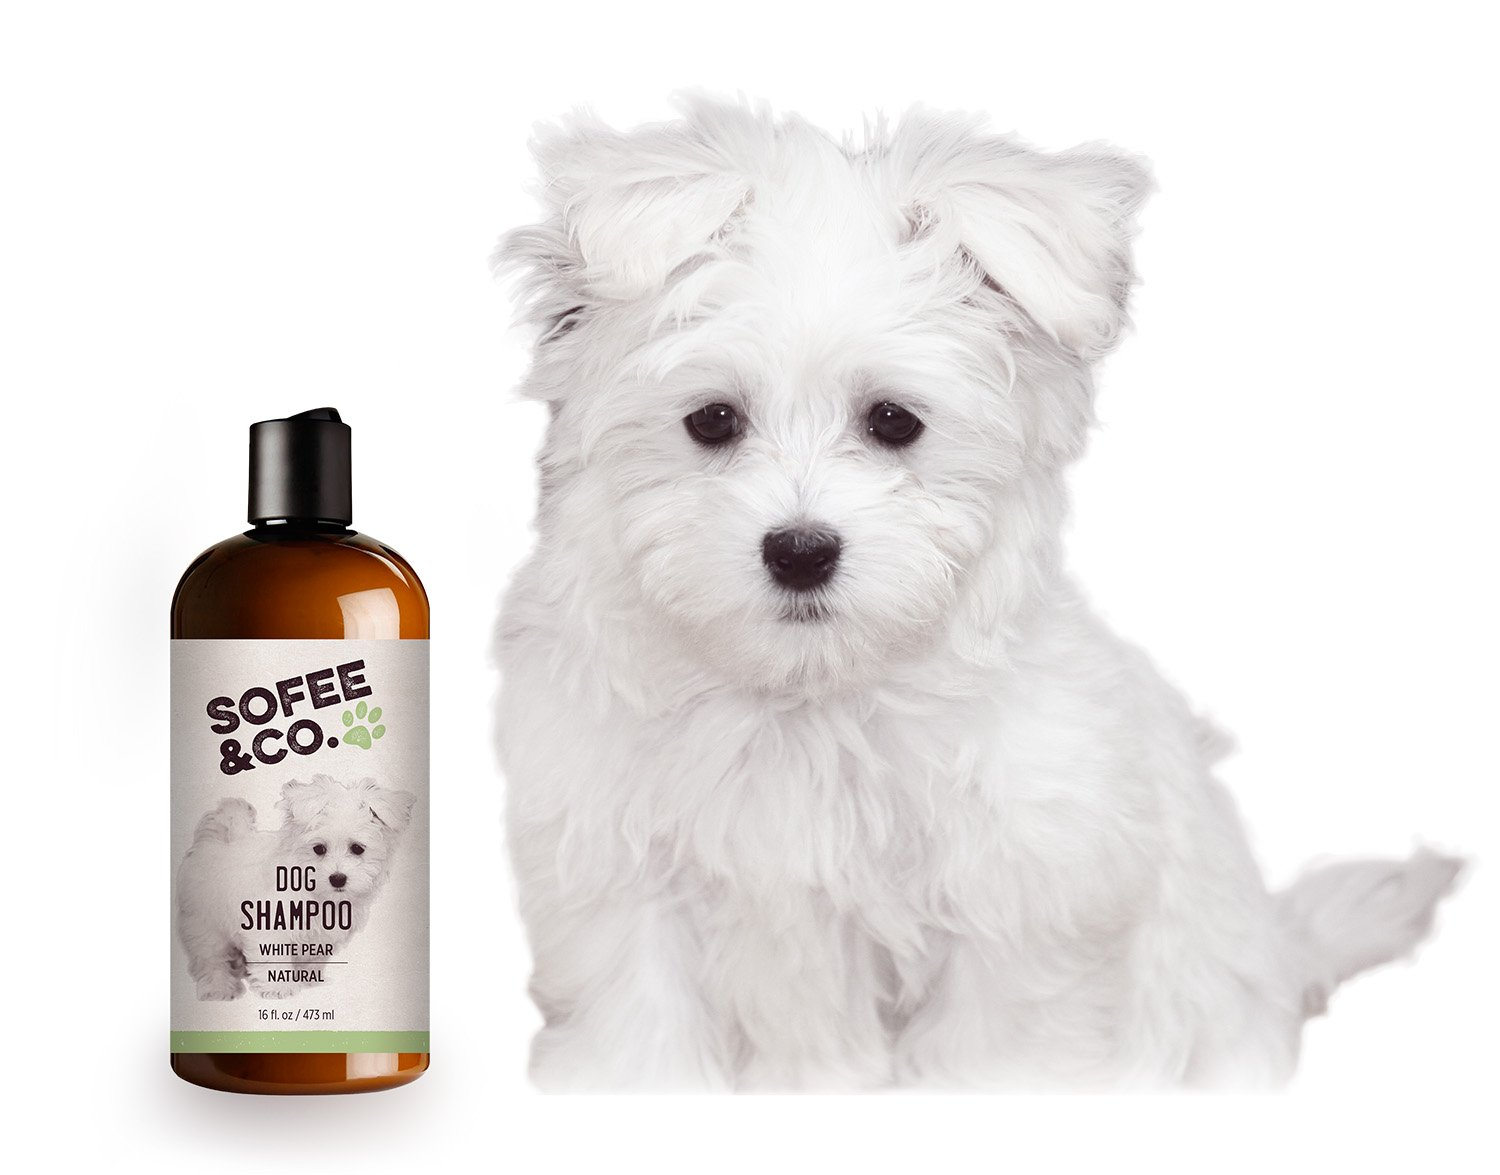 Sofee & Co. Natural Dog/Puppy Shampoo, White Pear - Clean, Moisturize, Deodorize, Detangle, Calm, Soothe, Soften, Normal, Dry, Itchy, Allergy, Sensitive Skin. Prevent Mattes. 16 oz by Sofee & Co. (Image #6)